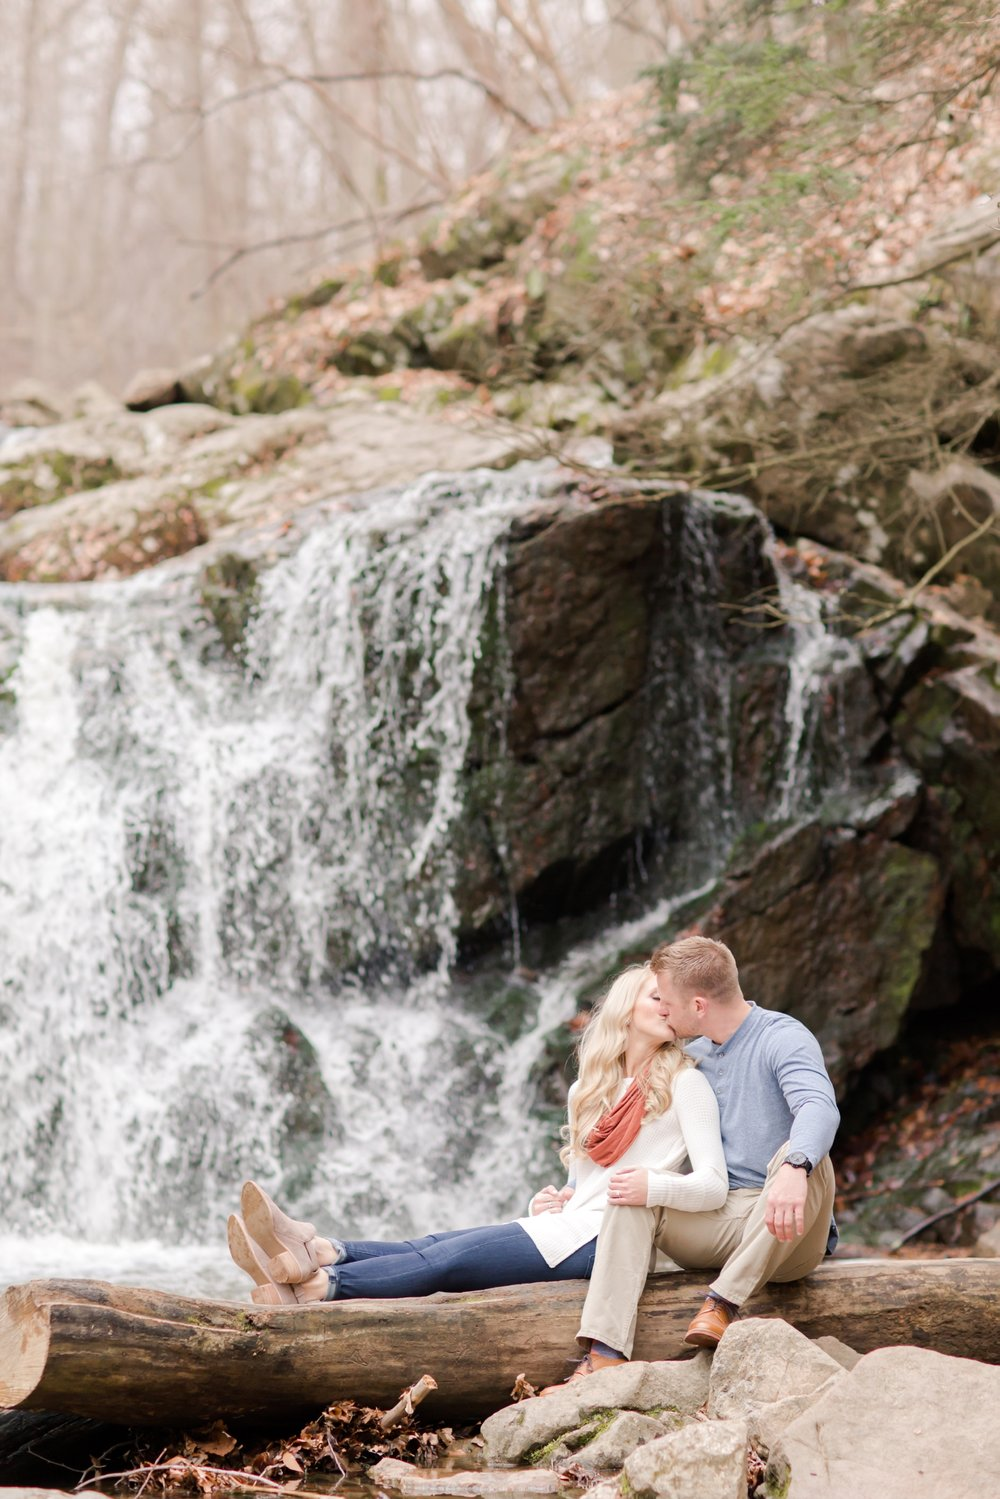 Kristine & Joe Engagement-217_anna grace photography baltimore maryland engagement and wedding photographer patapsco state park engagement photo.jpg